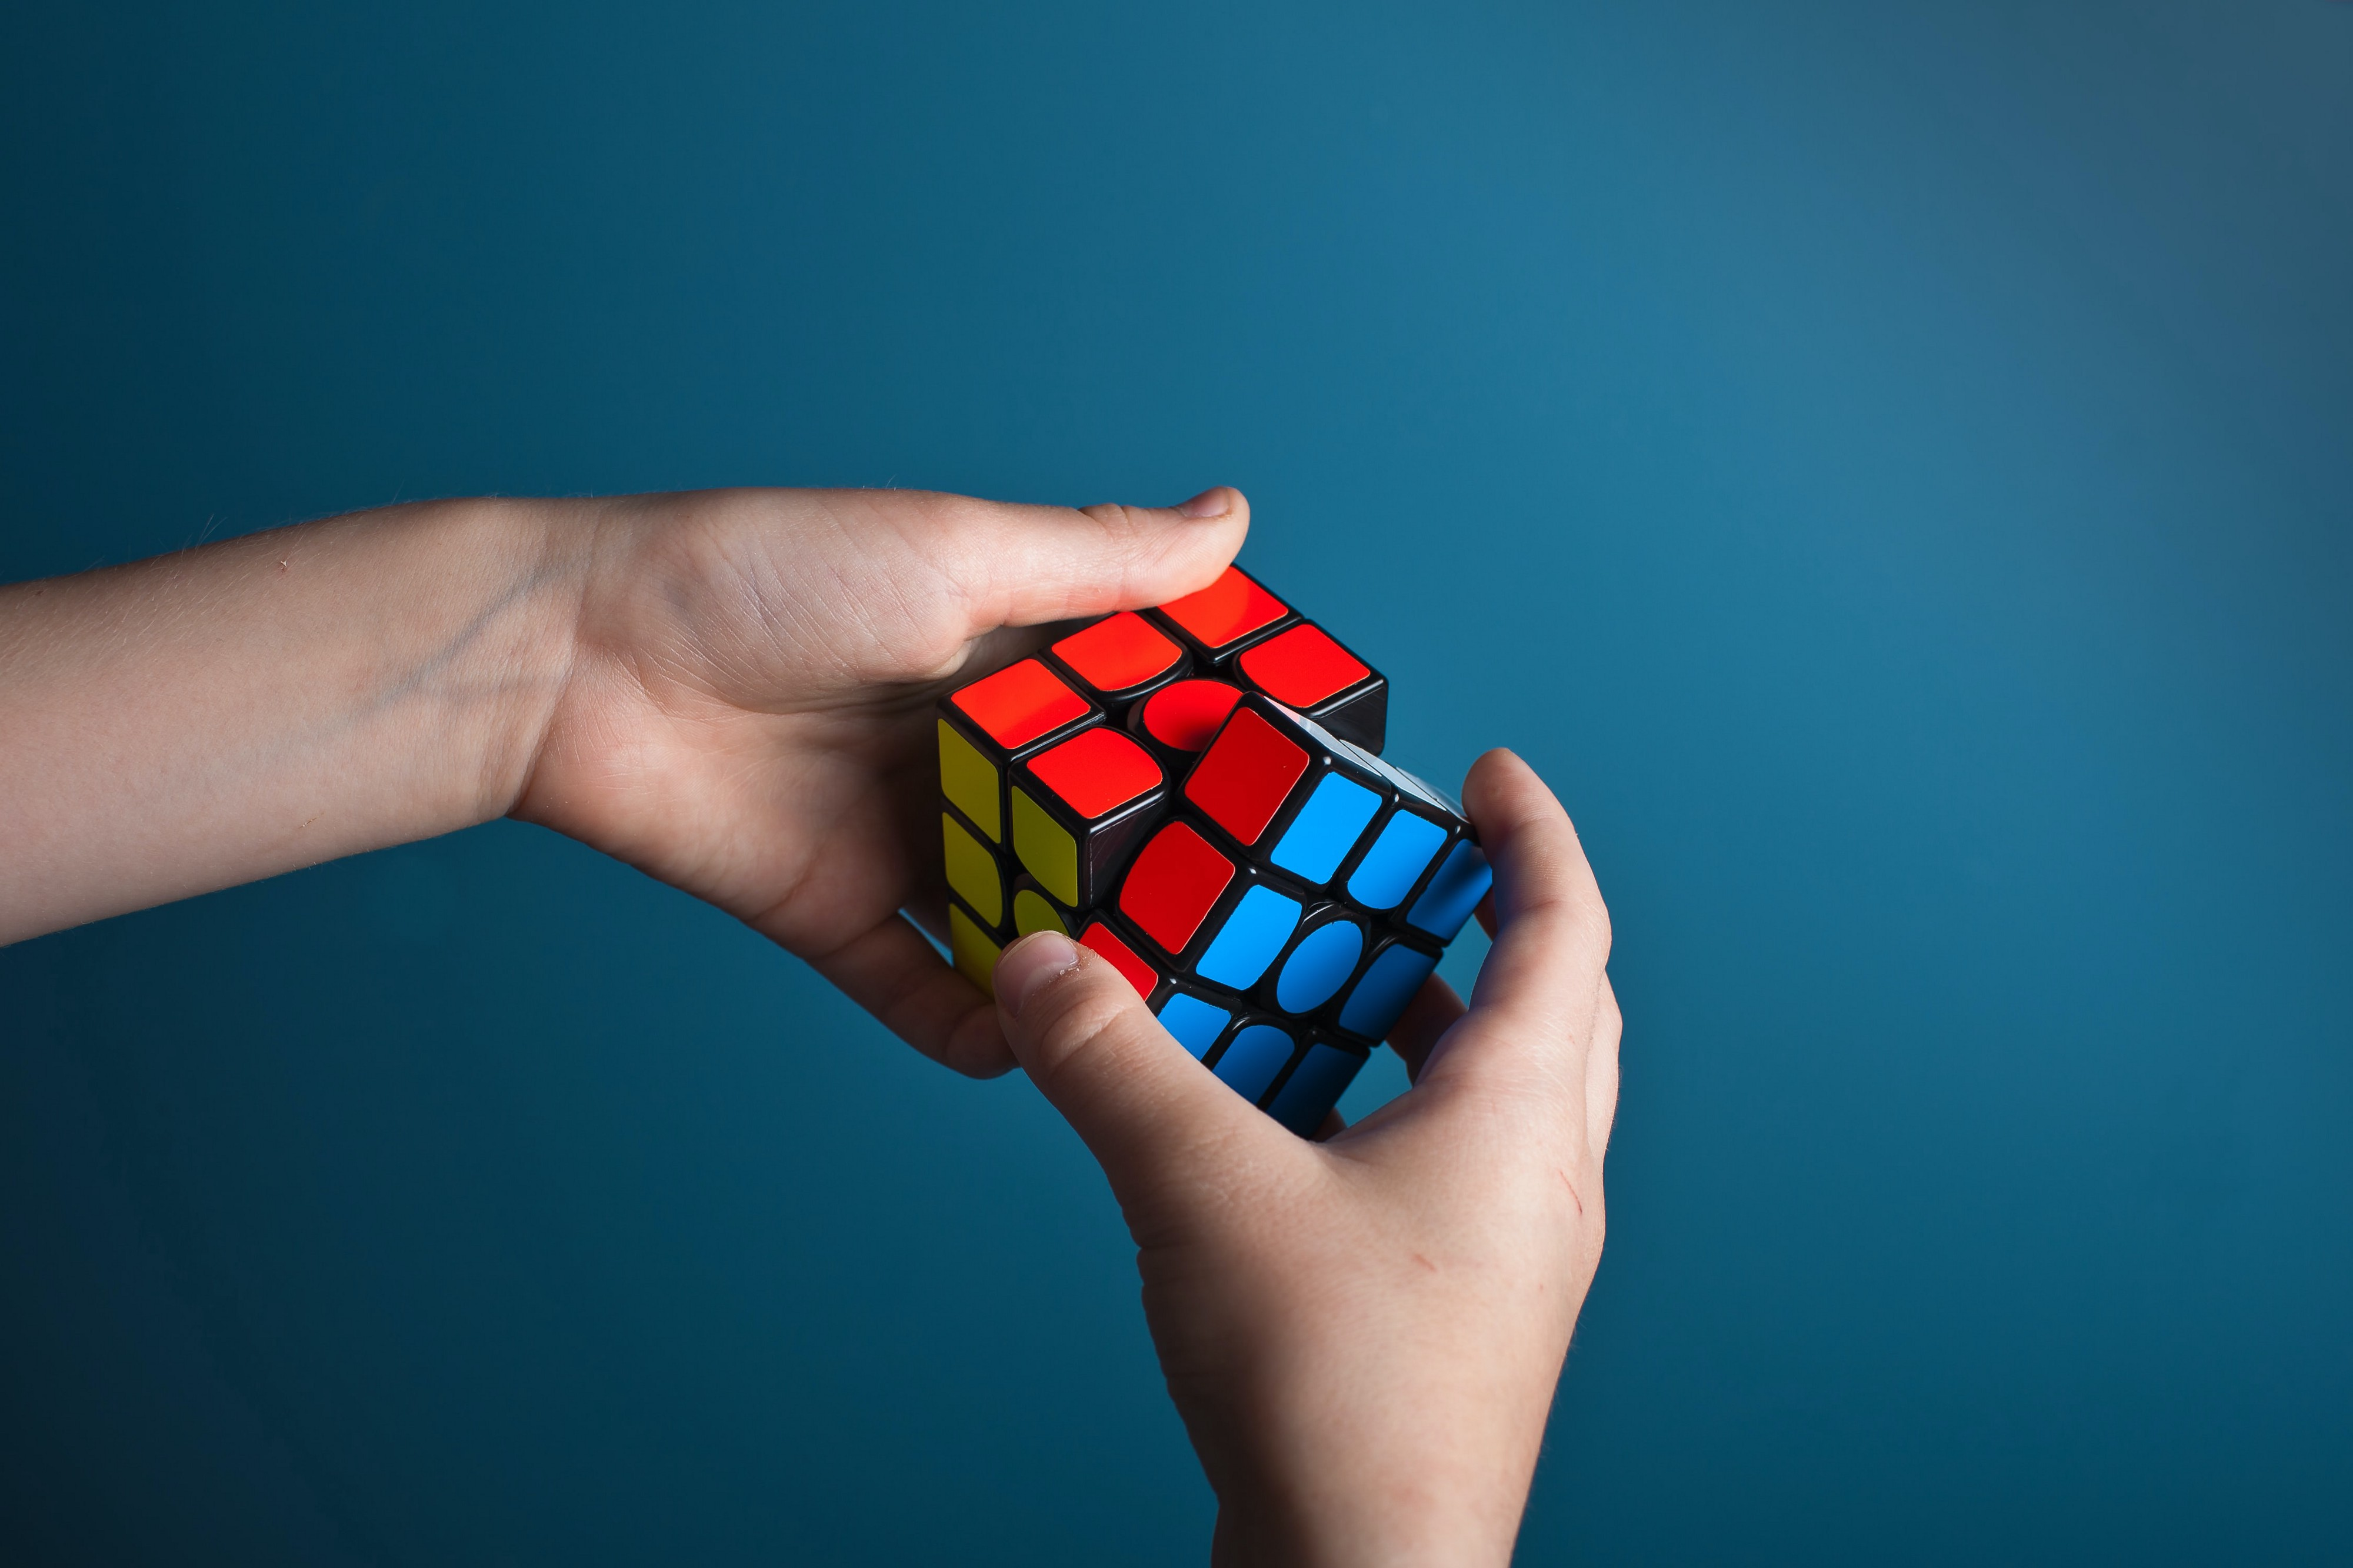 Trying to solve a Rubik's cube.